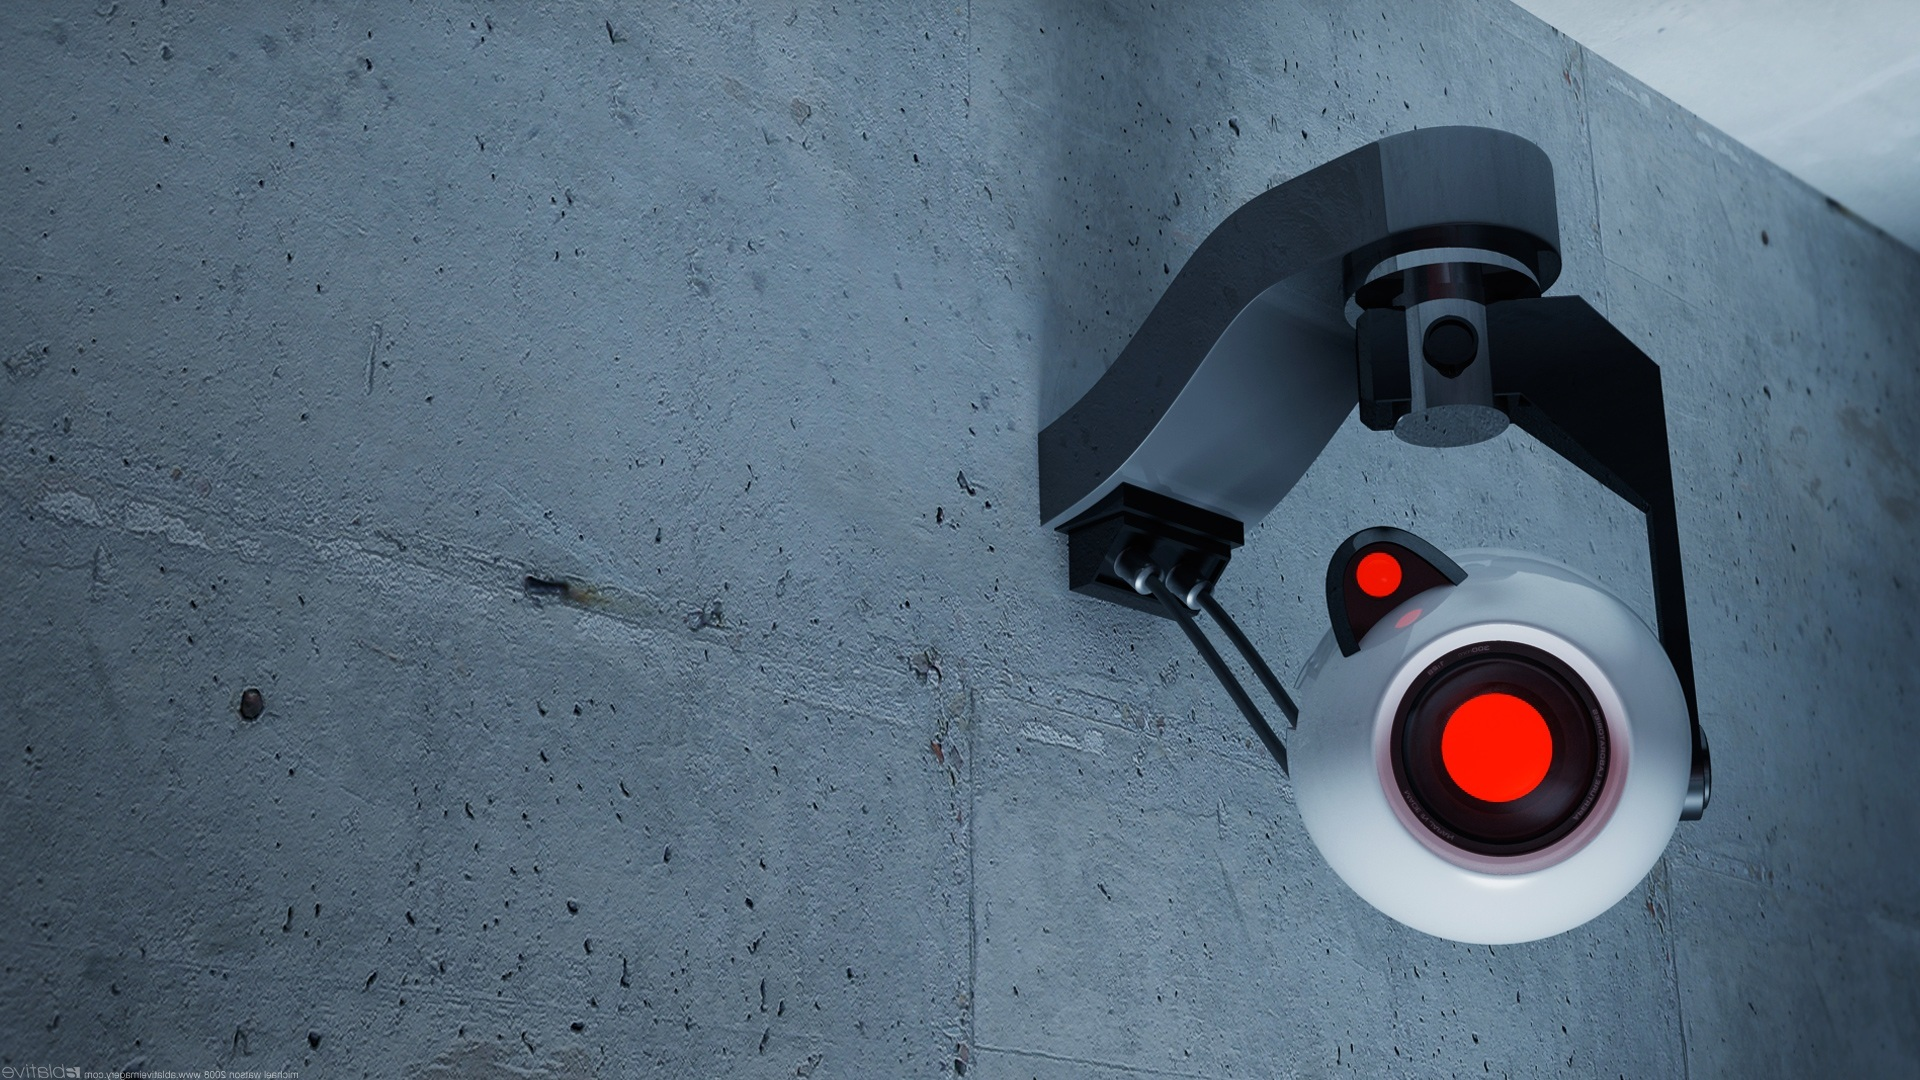 valve corporation Portal glados HD Wallpaper